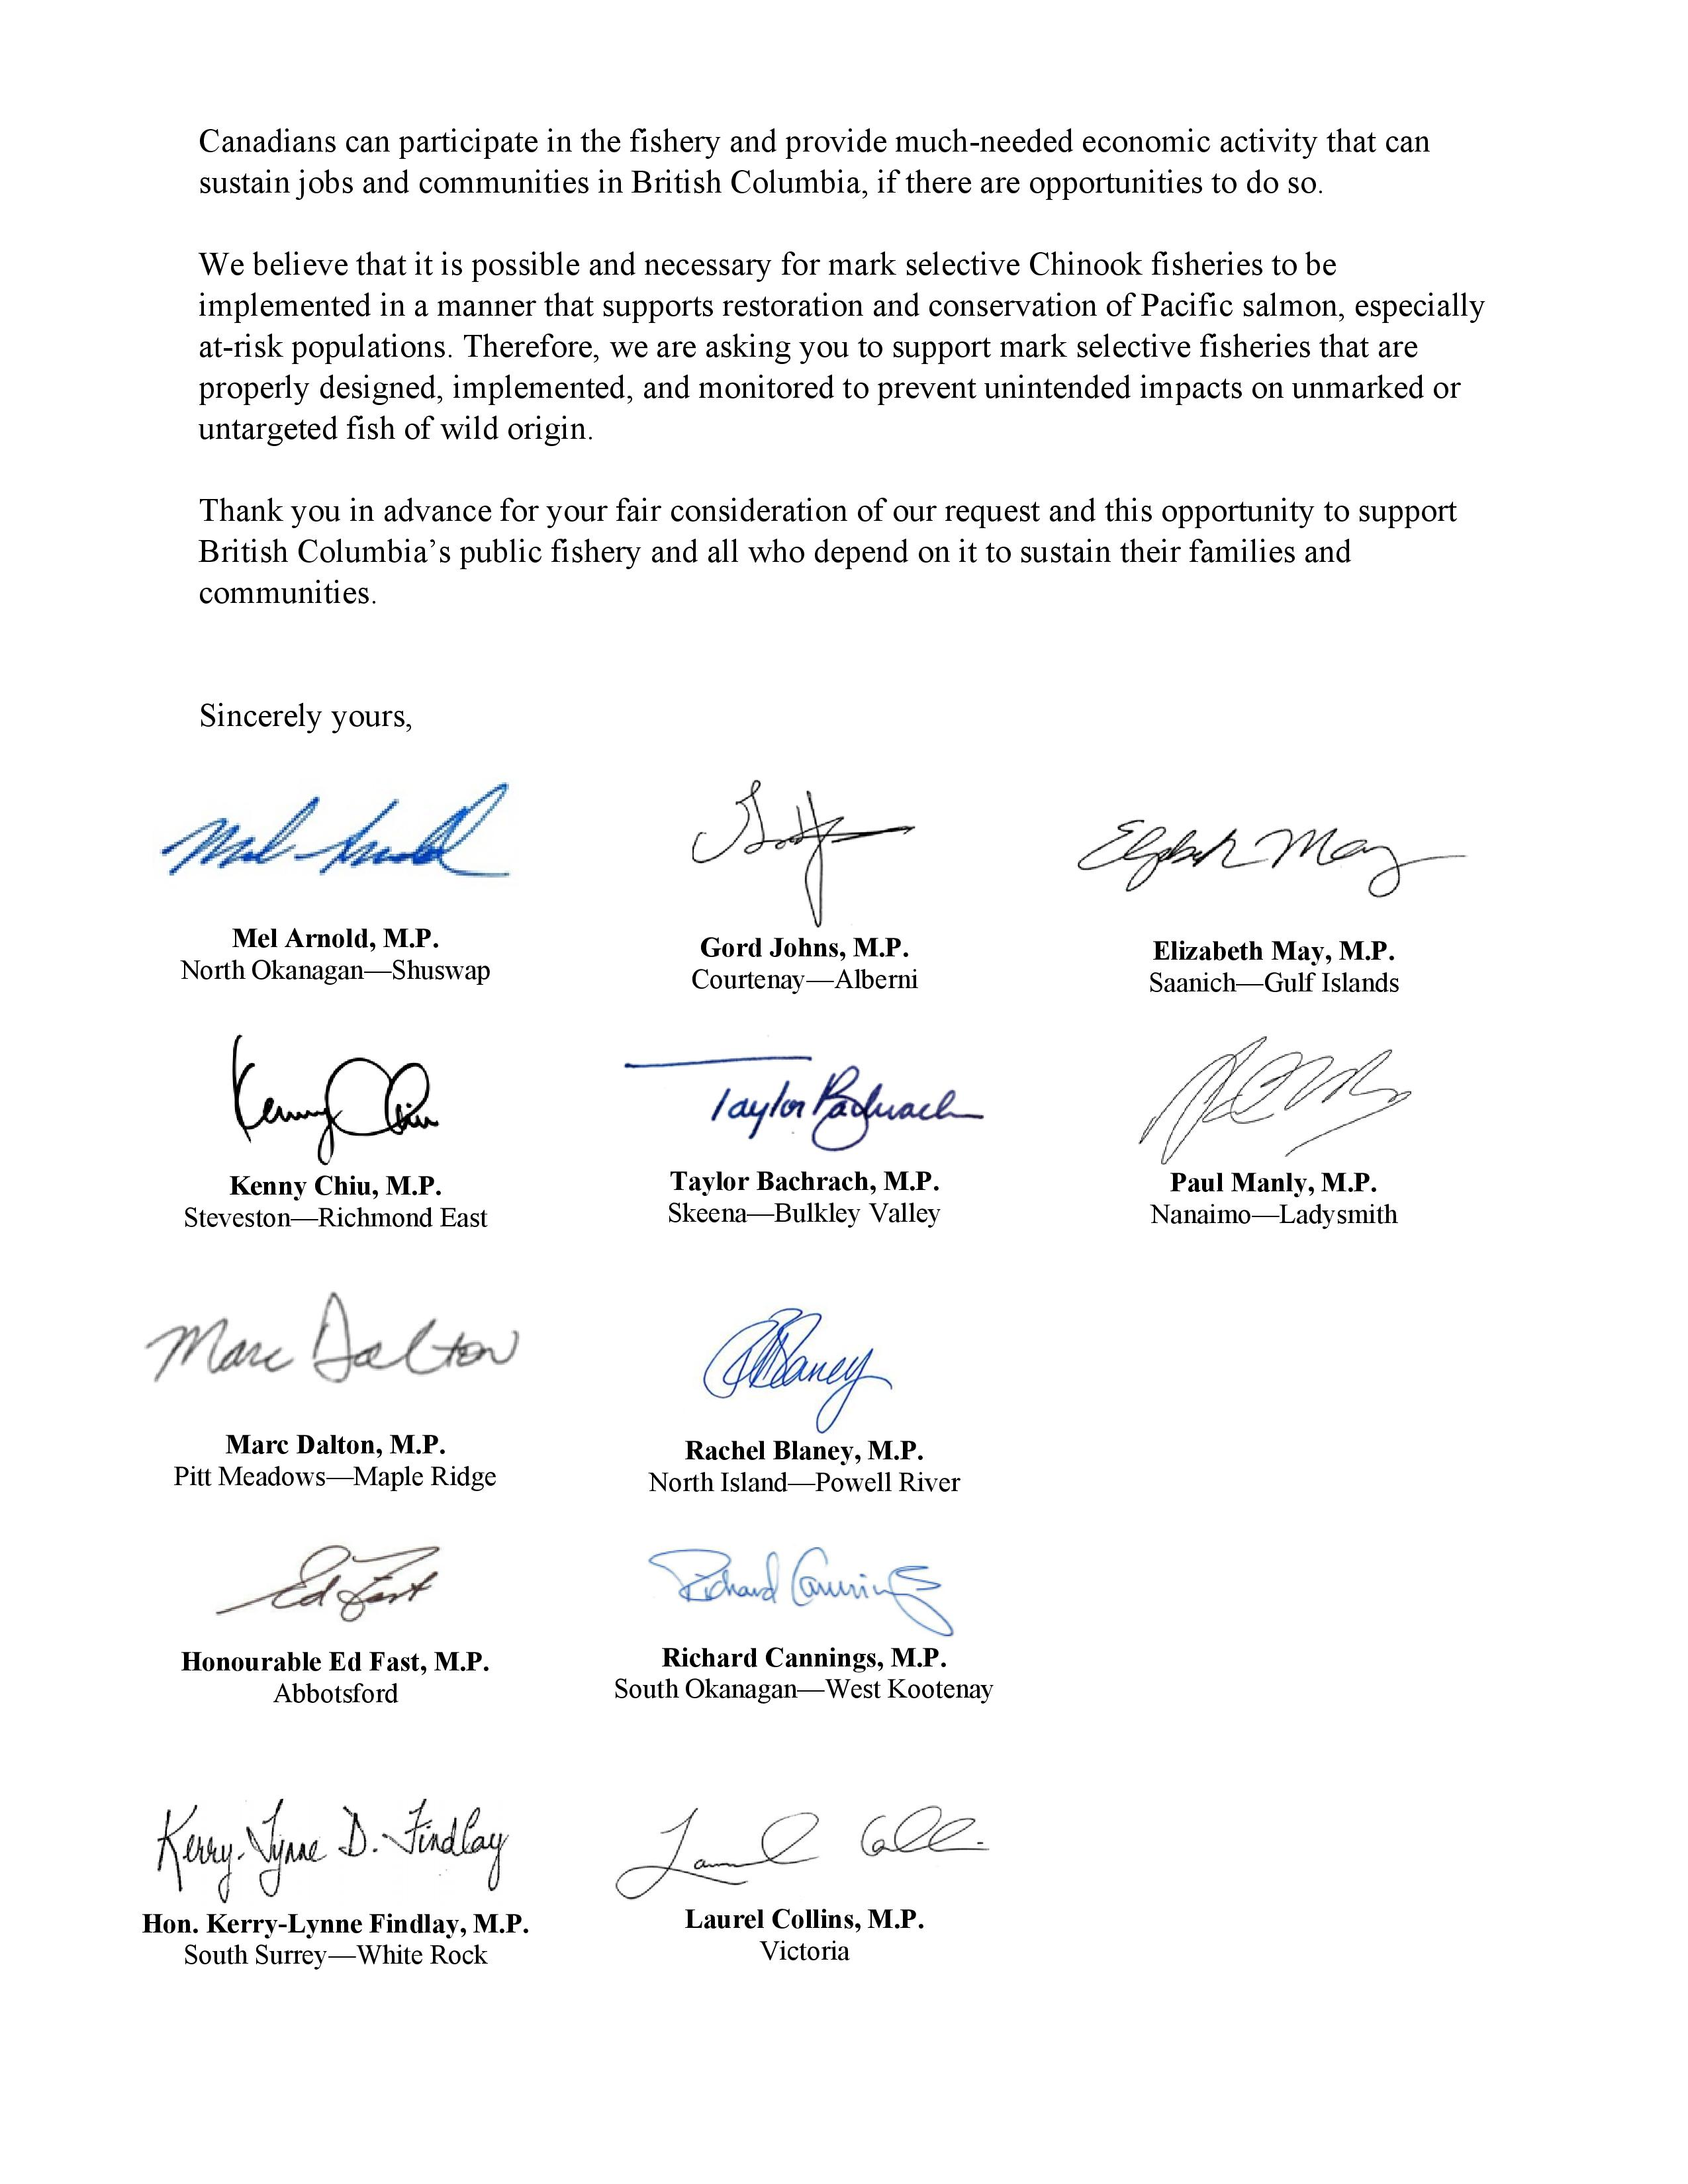 210311_Joint_Letter_from_BC_MPs_to_Min_Jordan_re_2021_Mark_Selective_Fisheries_FINAL-page-002.jpg